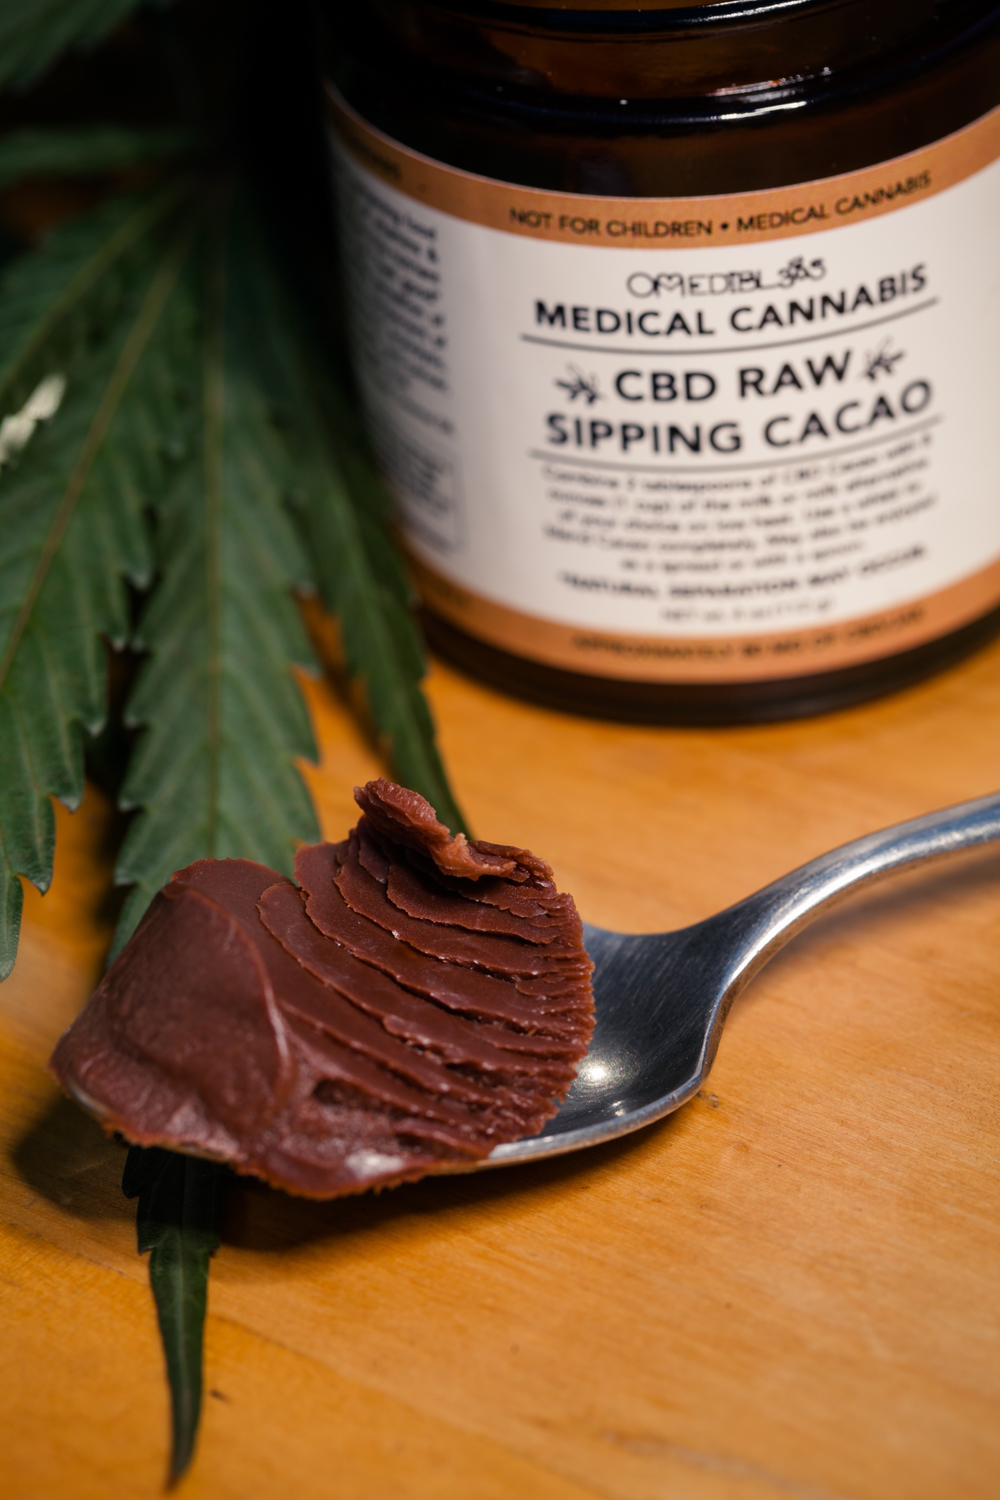 CBD RAW SIPPING CACAO